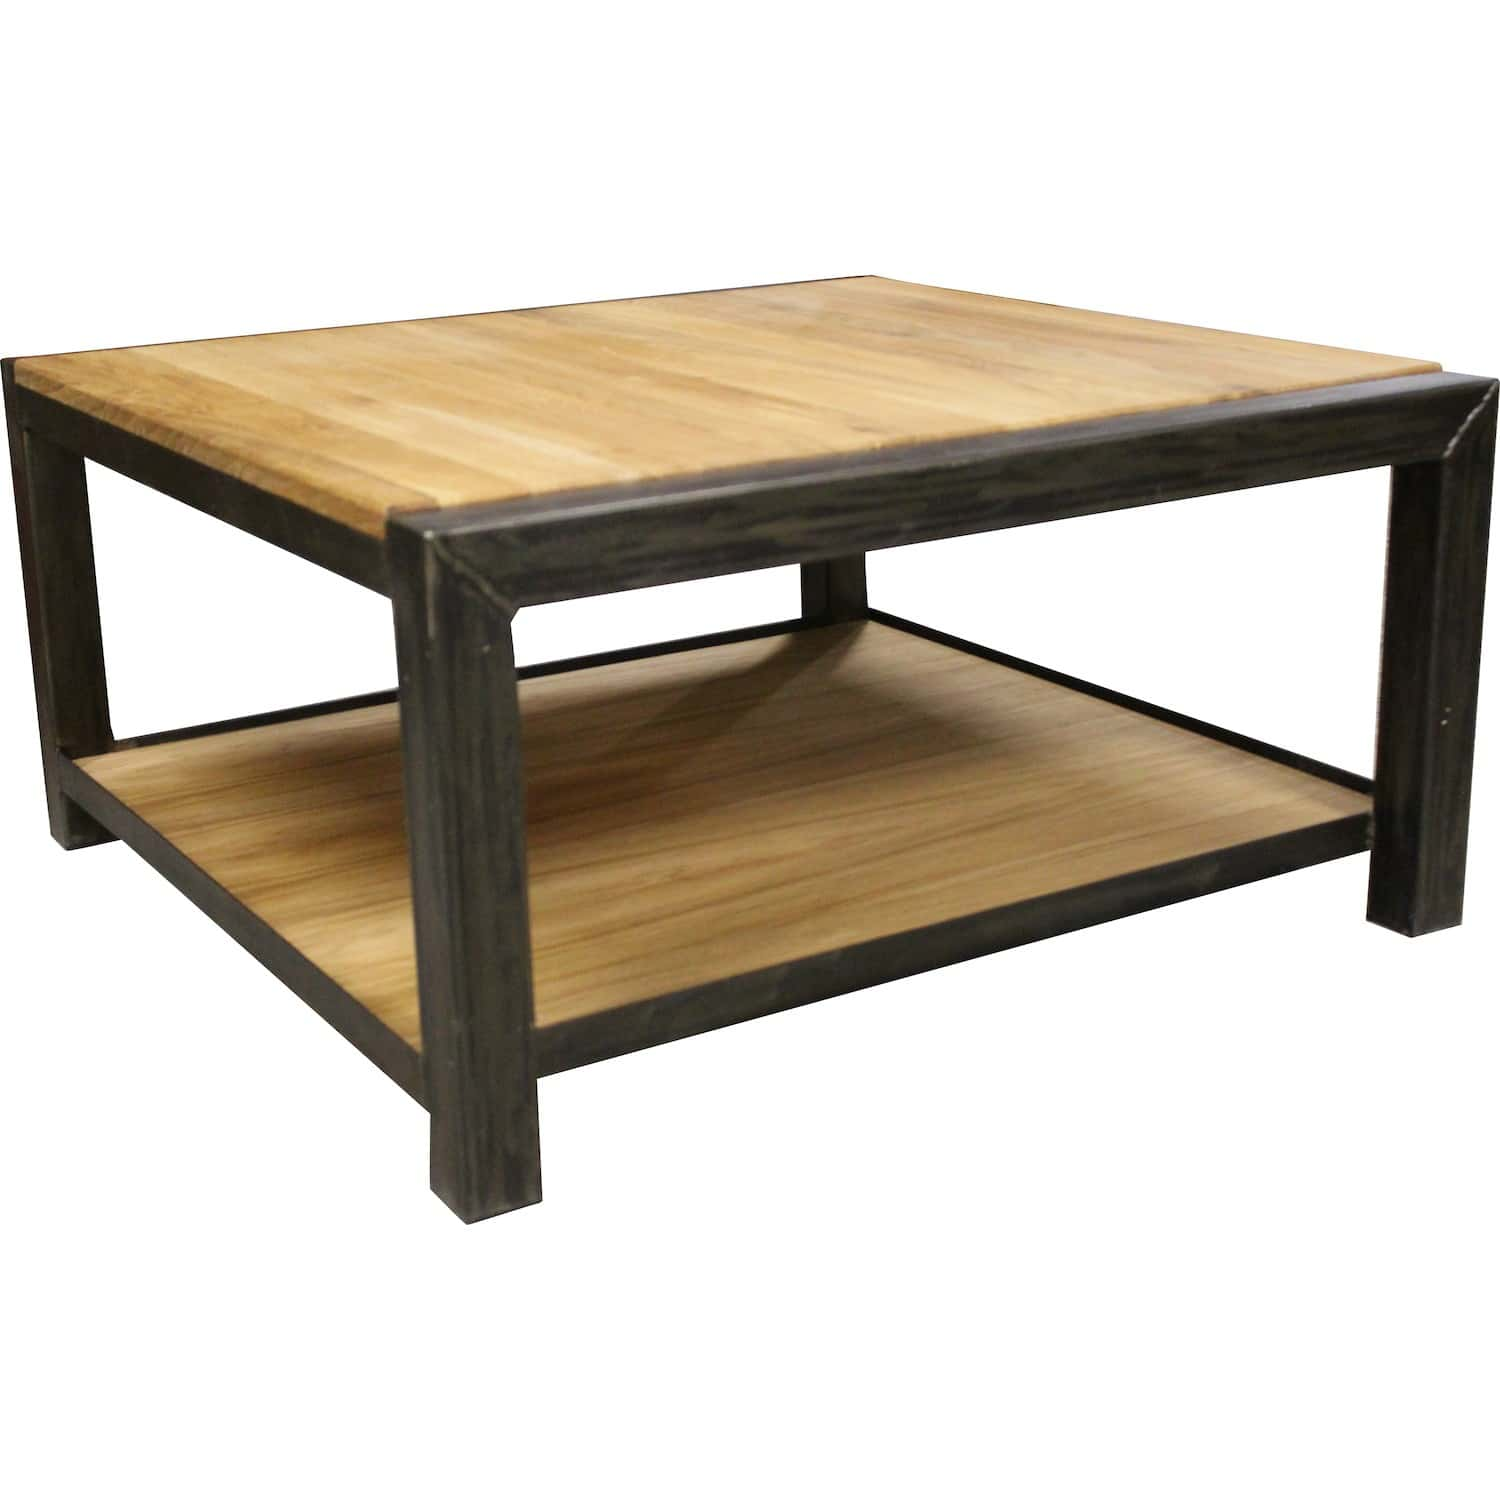 Table basse coffre doccasion for Table basse coffre bois